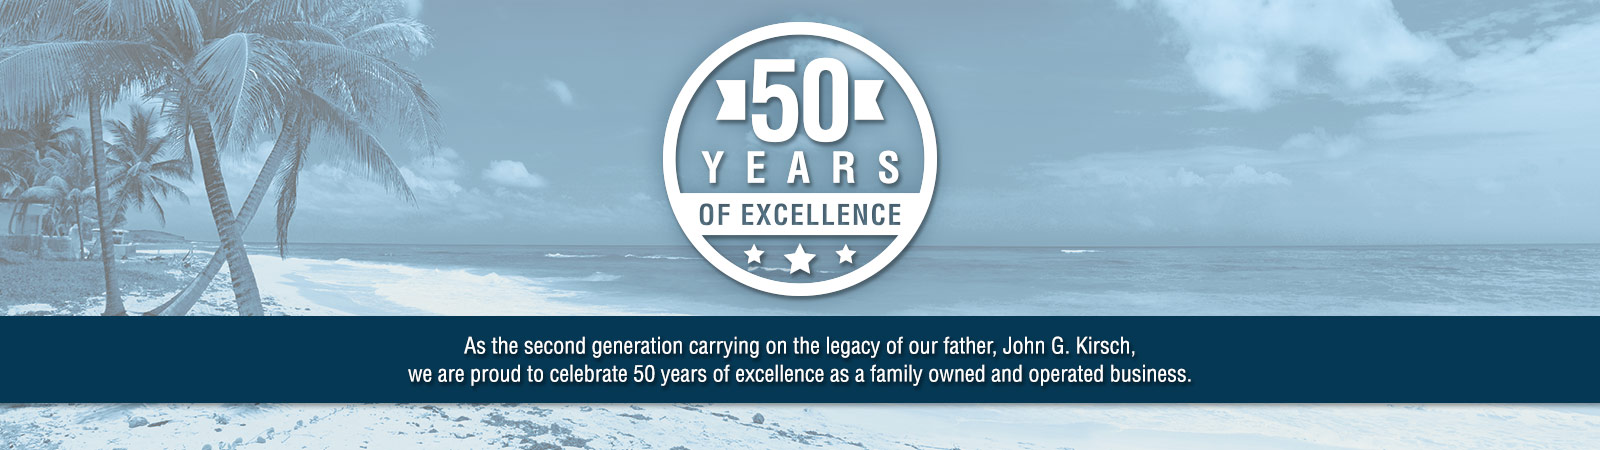 50 Years of Excellence - Our Legacy